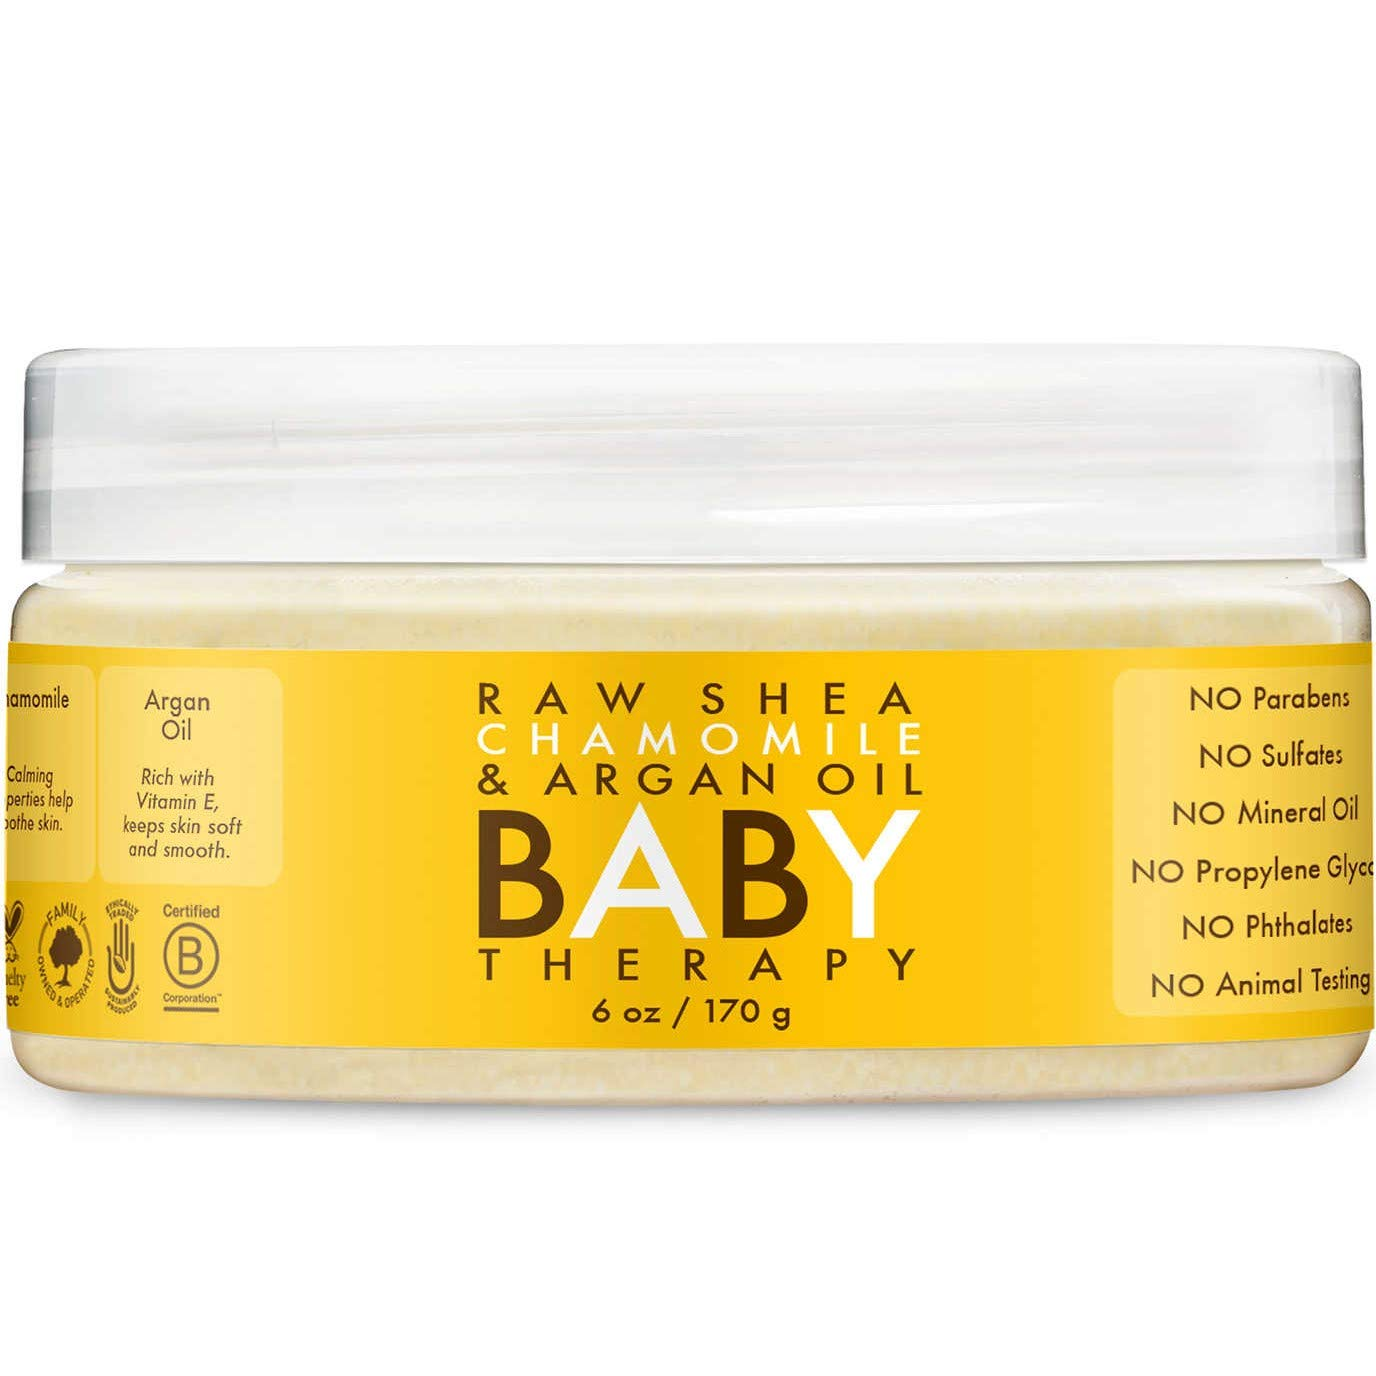 Shea Moisture Baby Therapy, Raw Shea Butter, Argan Oil & Extracts Of Frankincense & Myrrh, 6 Ounce by Shea Moisture